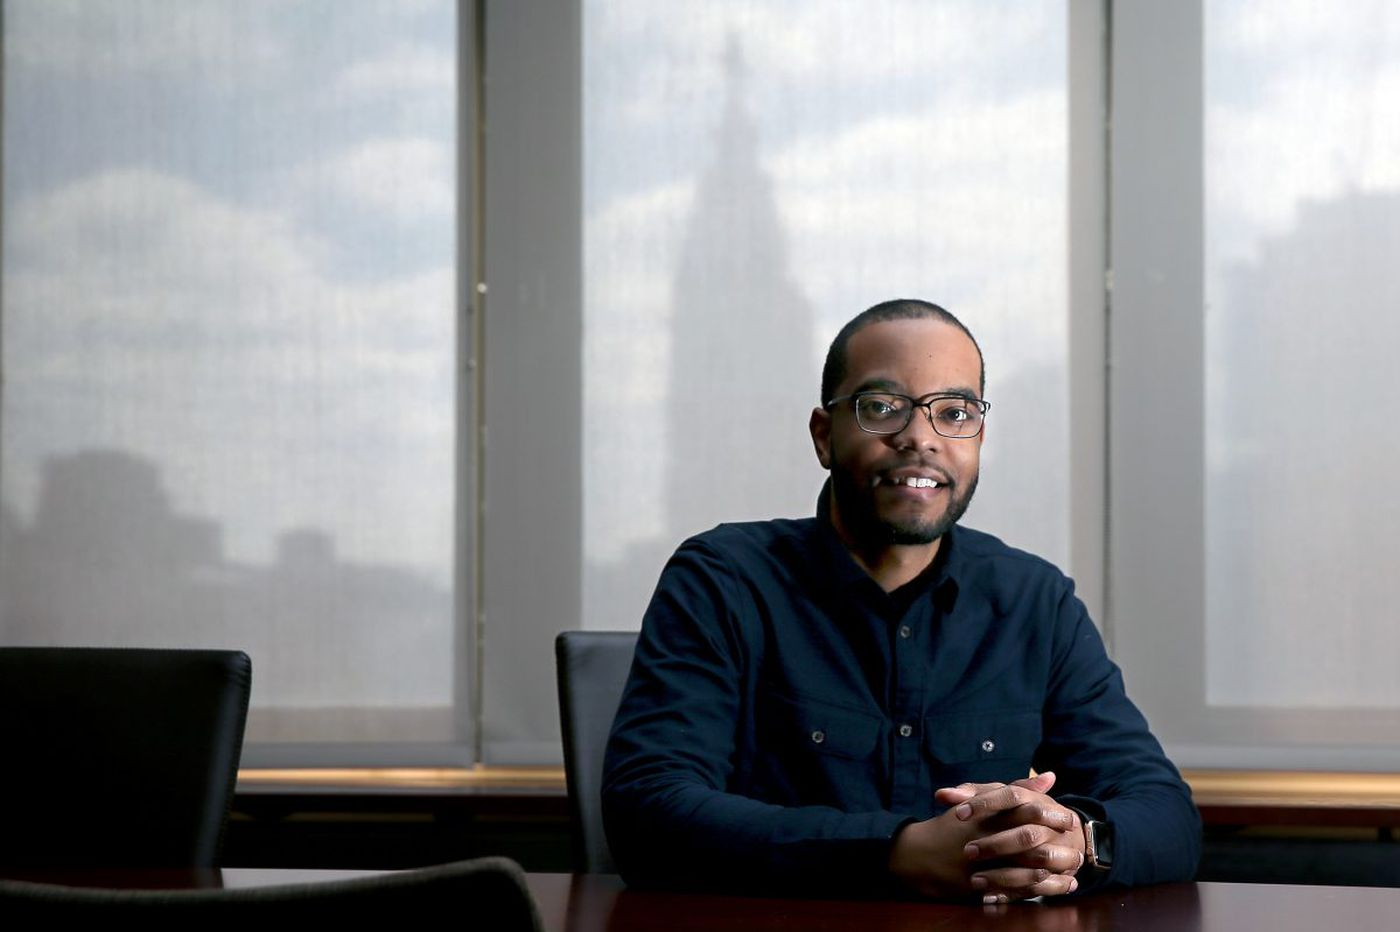 To address shortage of black doctors, Drexel medical